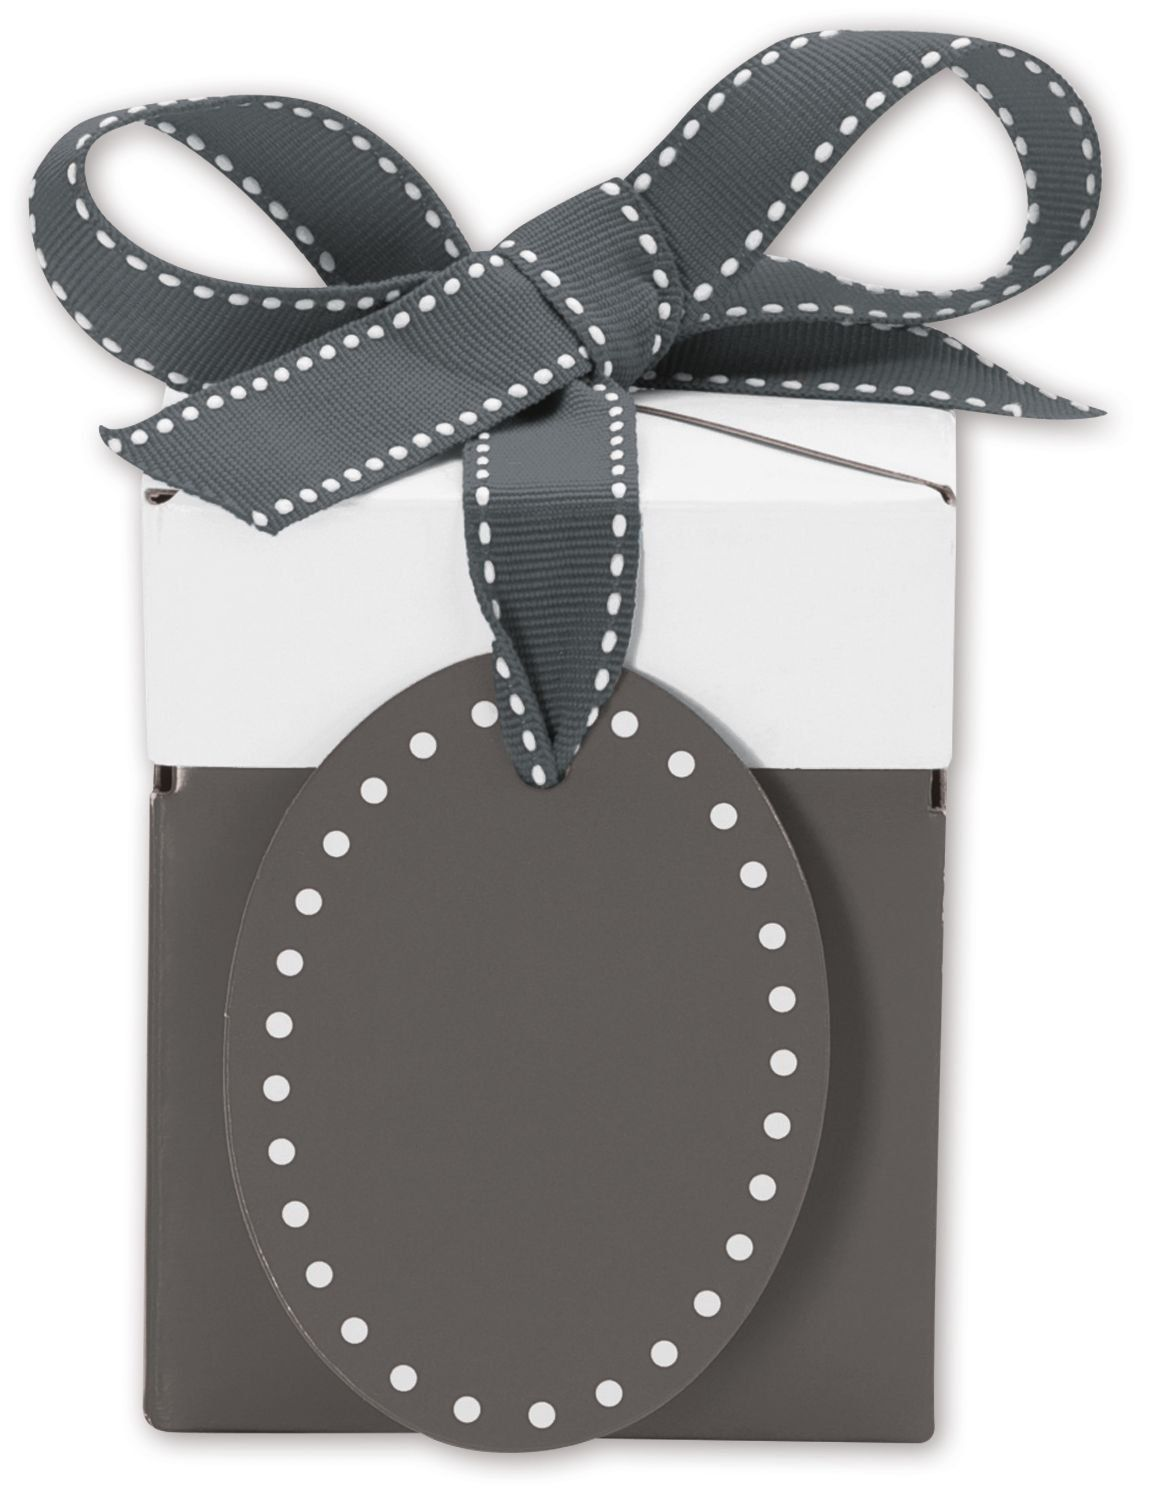 Solid gift box grad grey giftalicious pop up boxes 3 x 3 x 3 1 solid gift box grad grey giftalicious pop up boxes 3 x 3 x negle Images